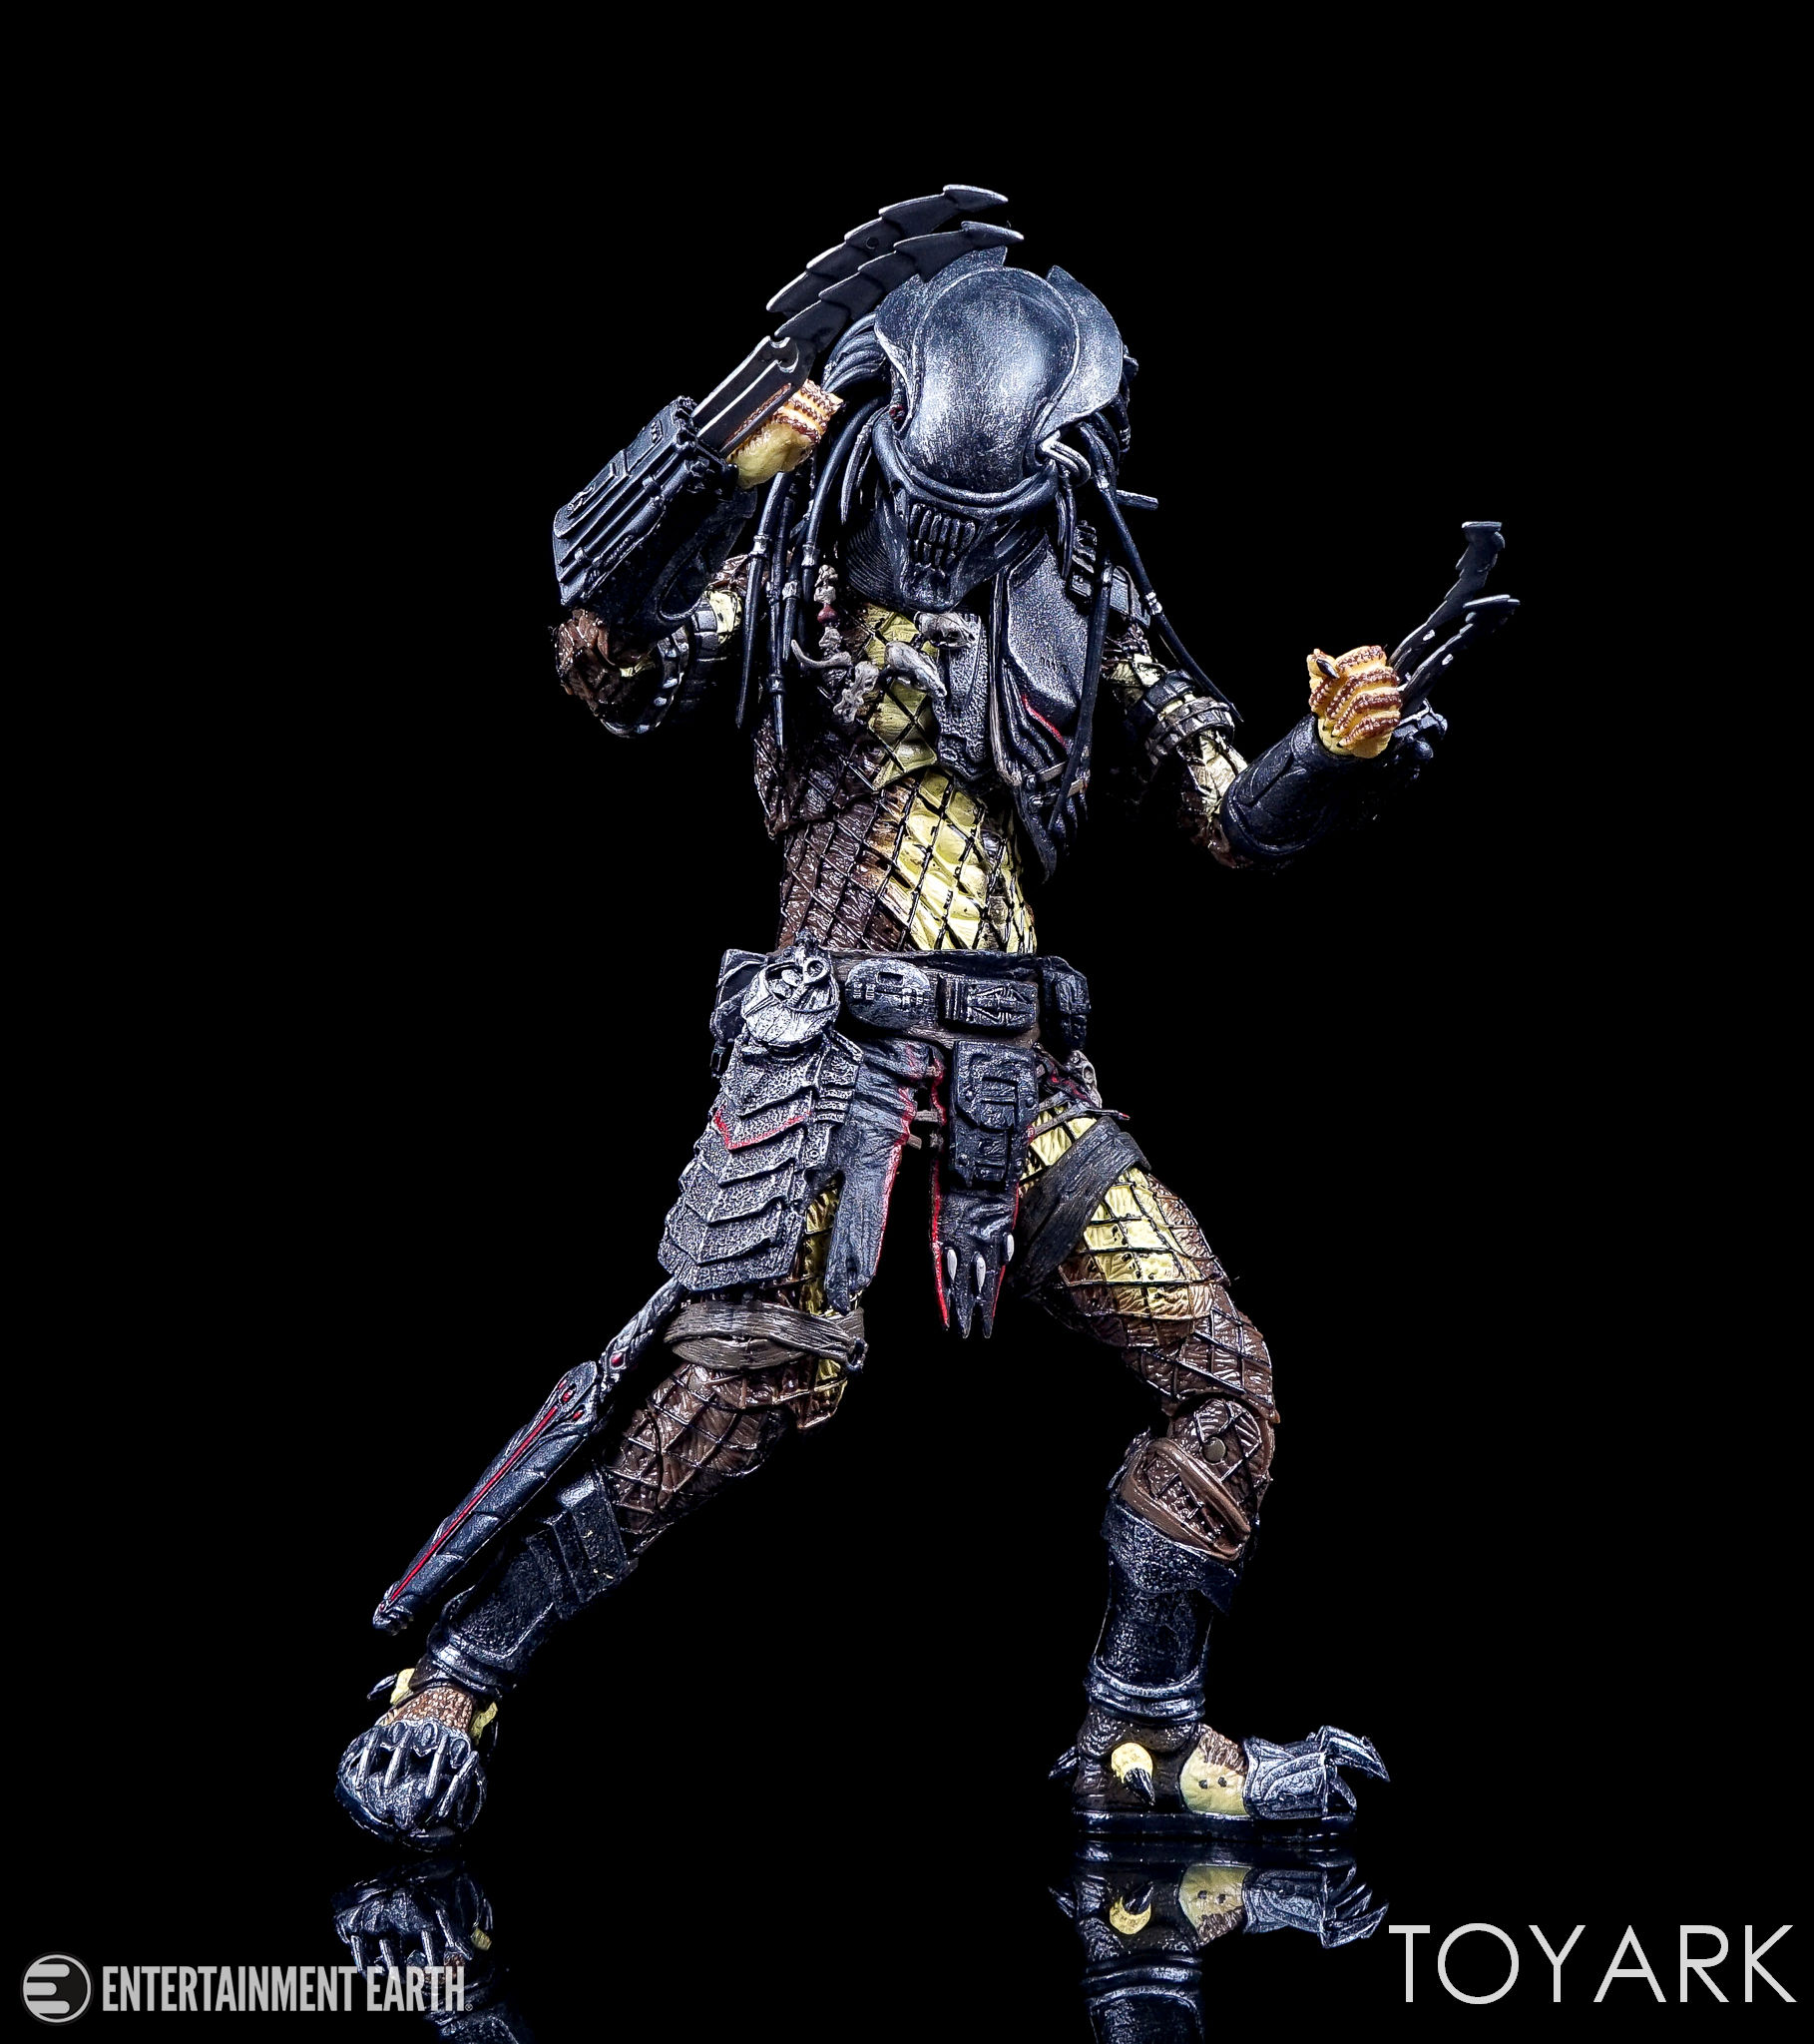 Predator Series 17 Elder Predator - Toyark Photo Shoot - The